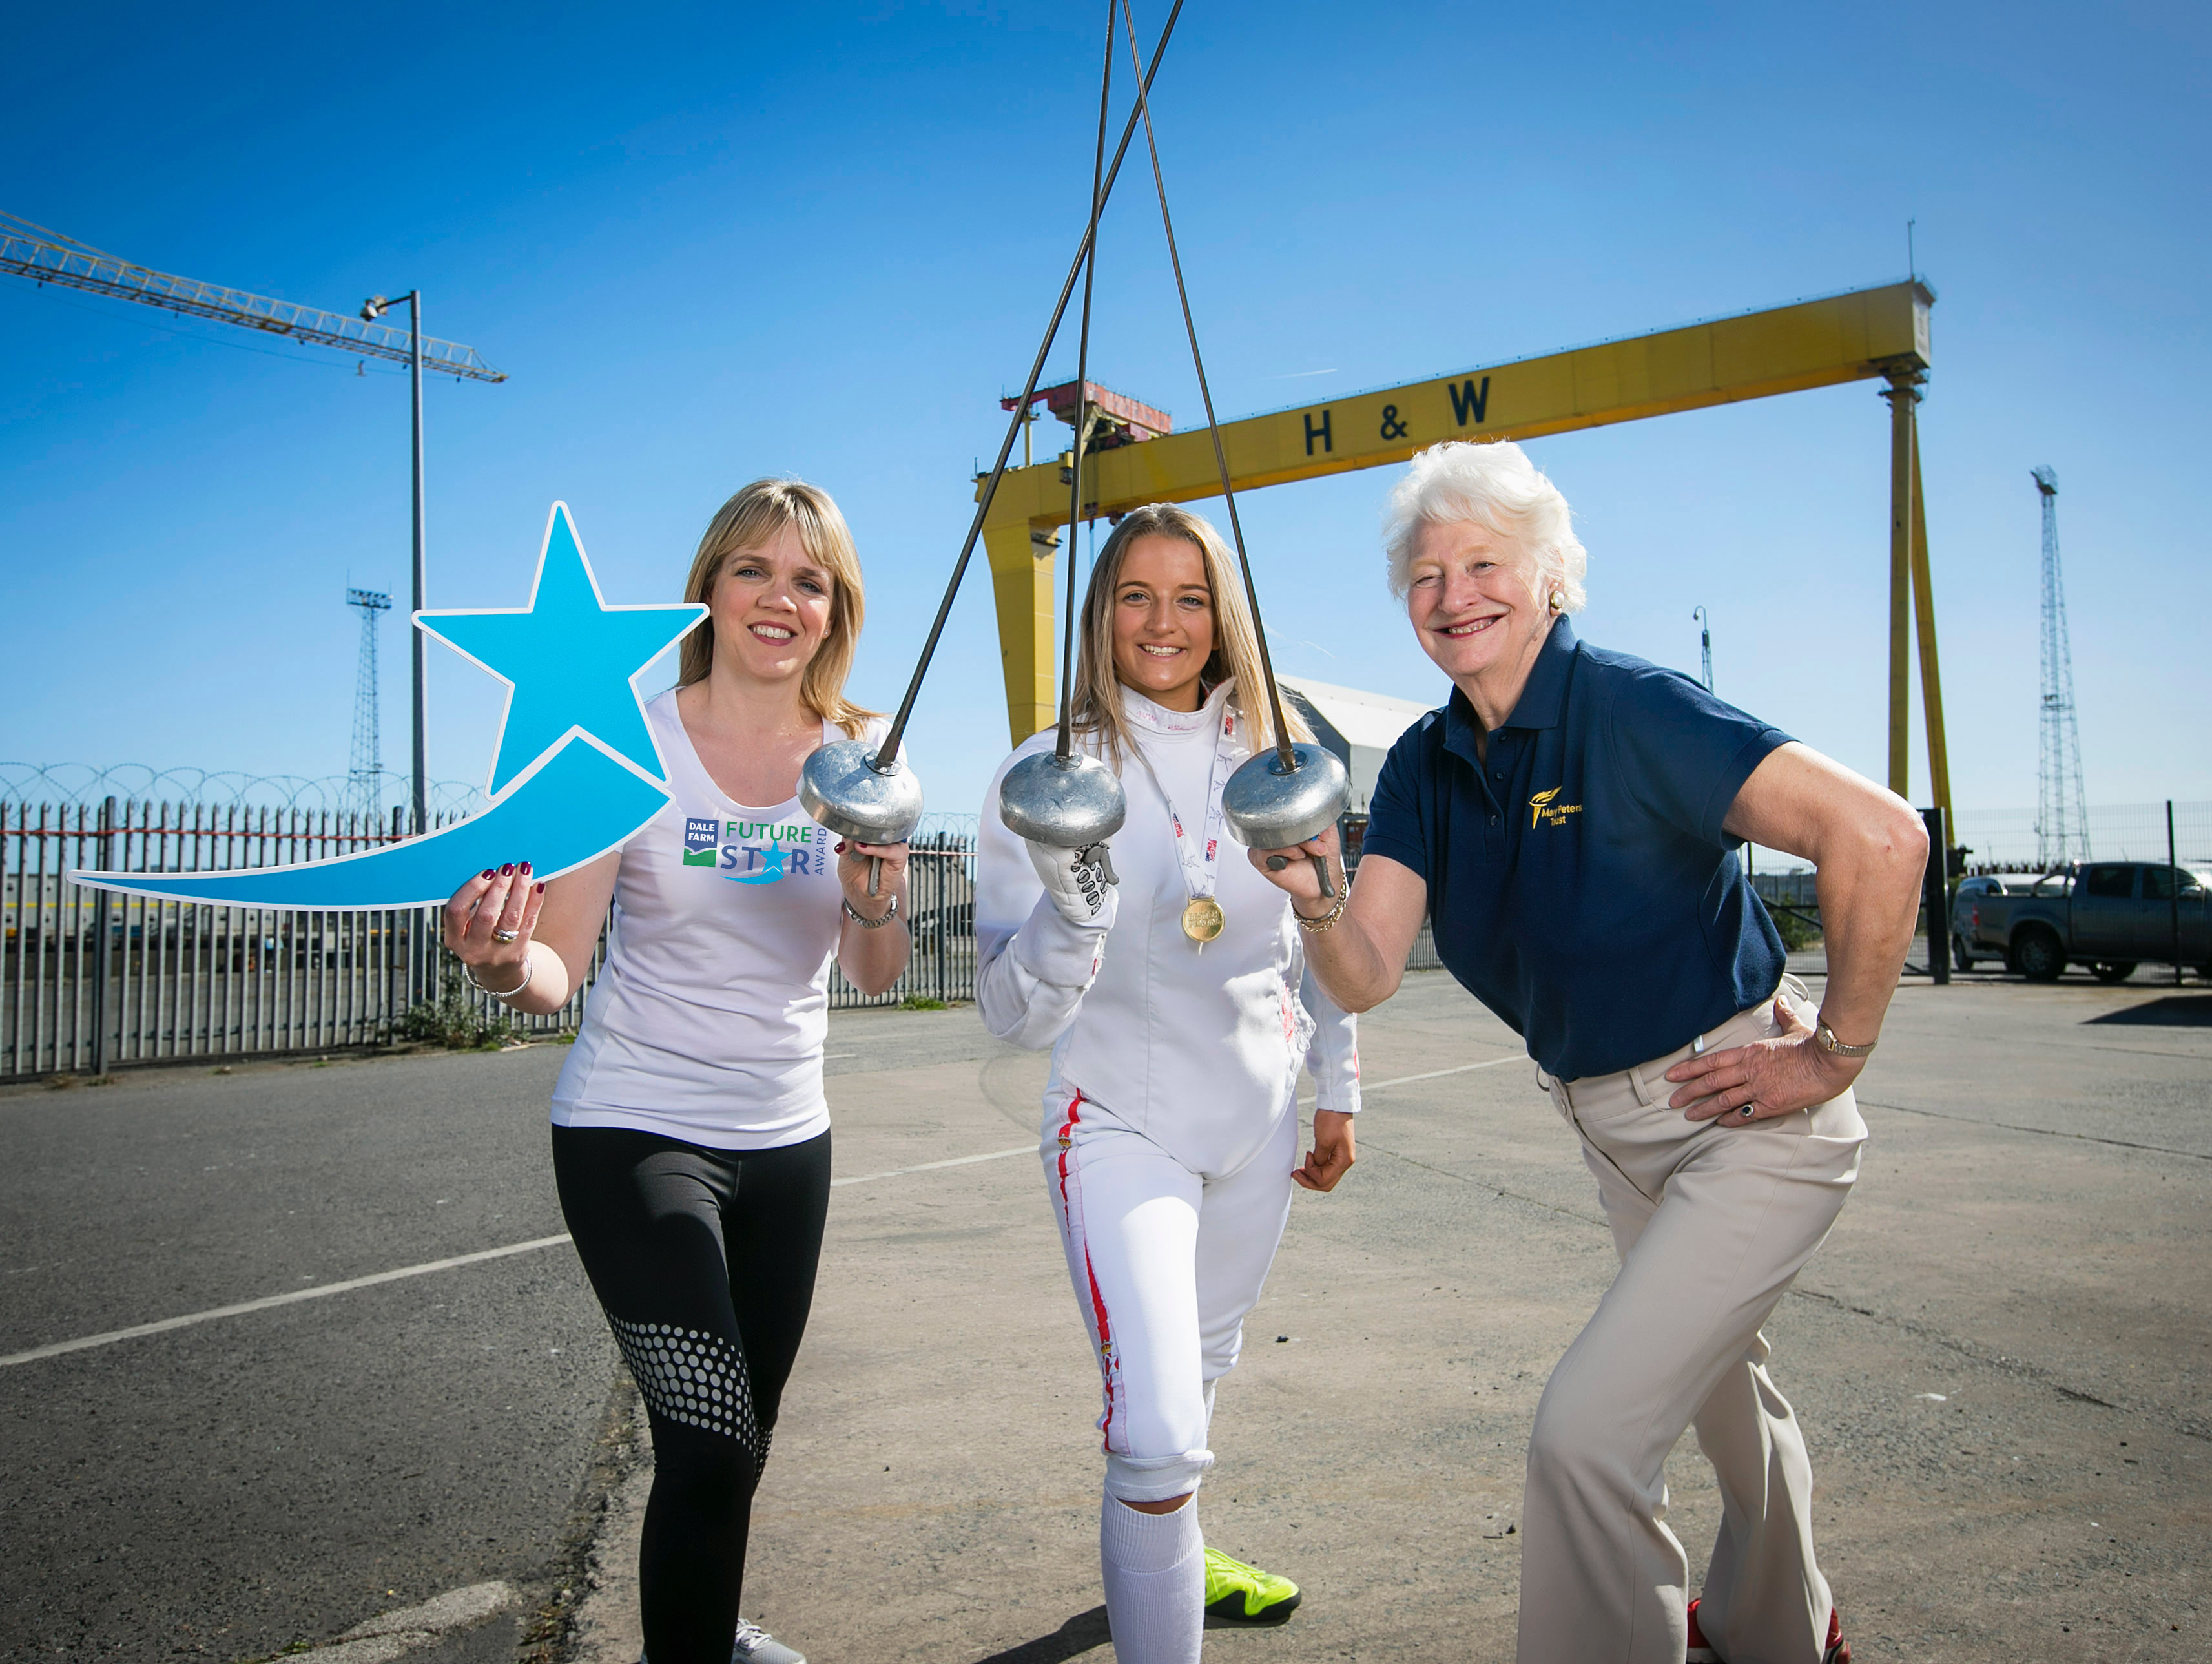 Lisburn's Charlotte Slater (16 years old), who last month won fencing's British Youth Championships (under 16s) for the third time, helped launch the Dale Farm FutureStar Award alongside Dale Farm Head of Marketing Caroline Martin and Dame Mary Peters DBE this week. The Dale Farm FutureStar Award will award one NI athlete with a £5,000 bursary alongside a supply of dairy products, new kit and skills training. Visit www.marypeterstrust.org for information / applications